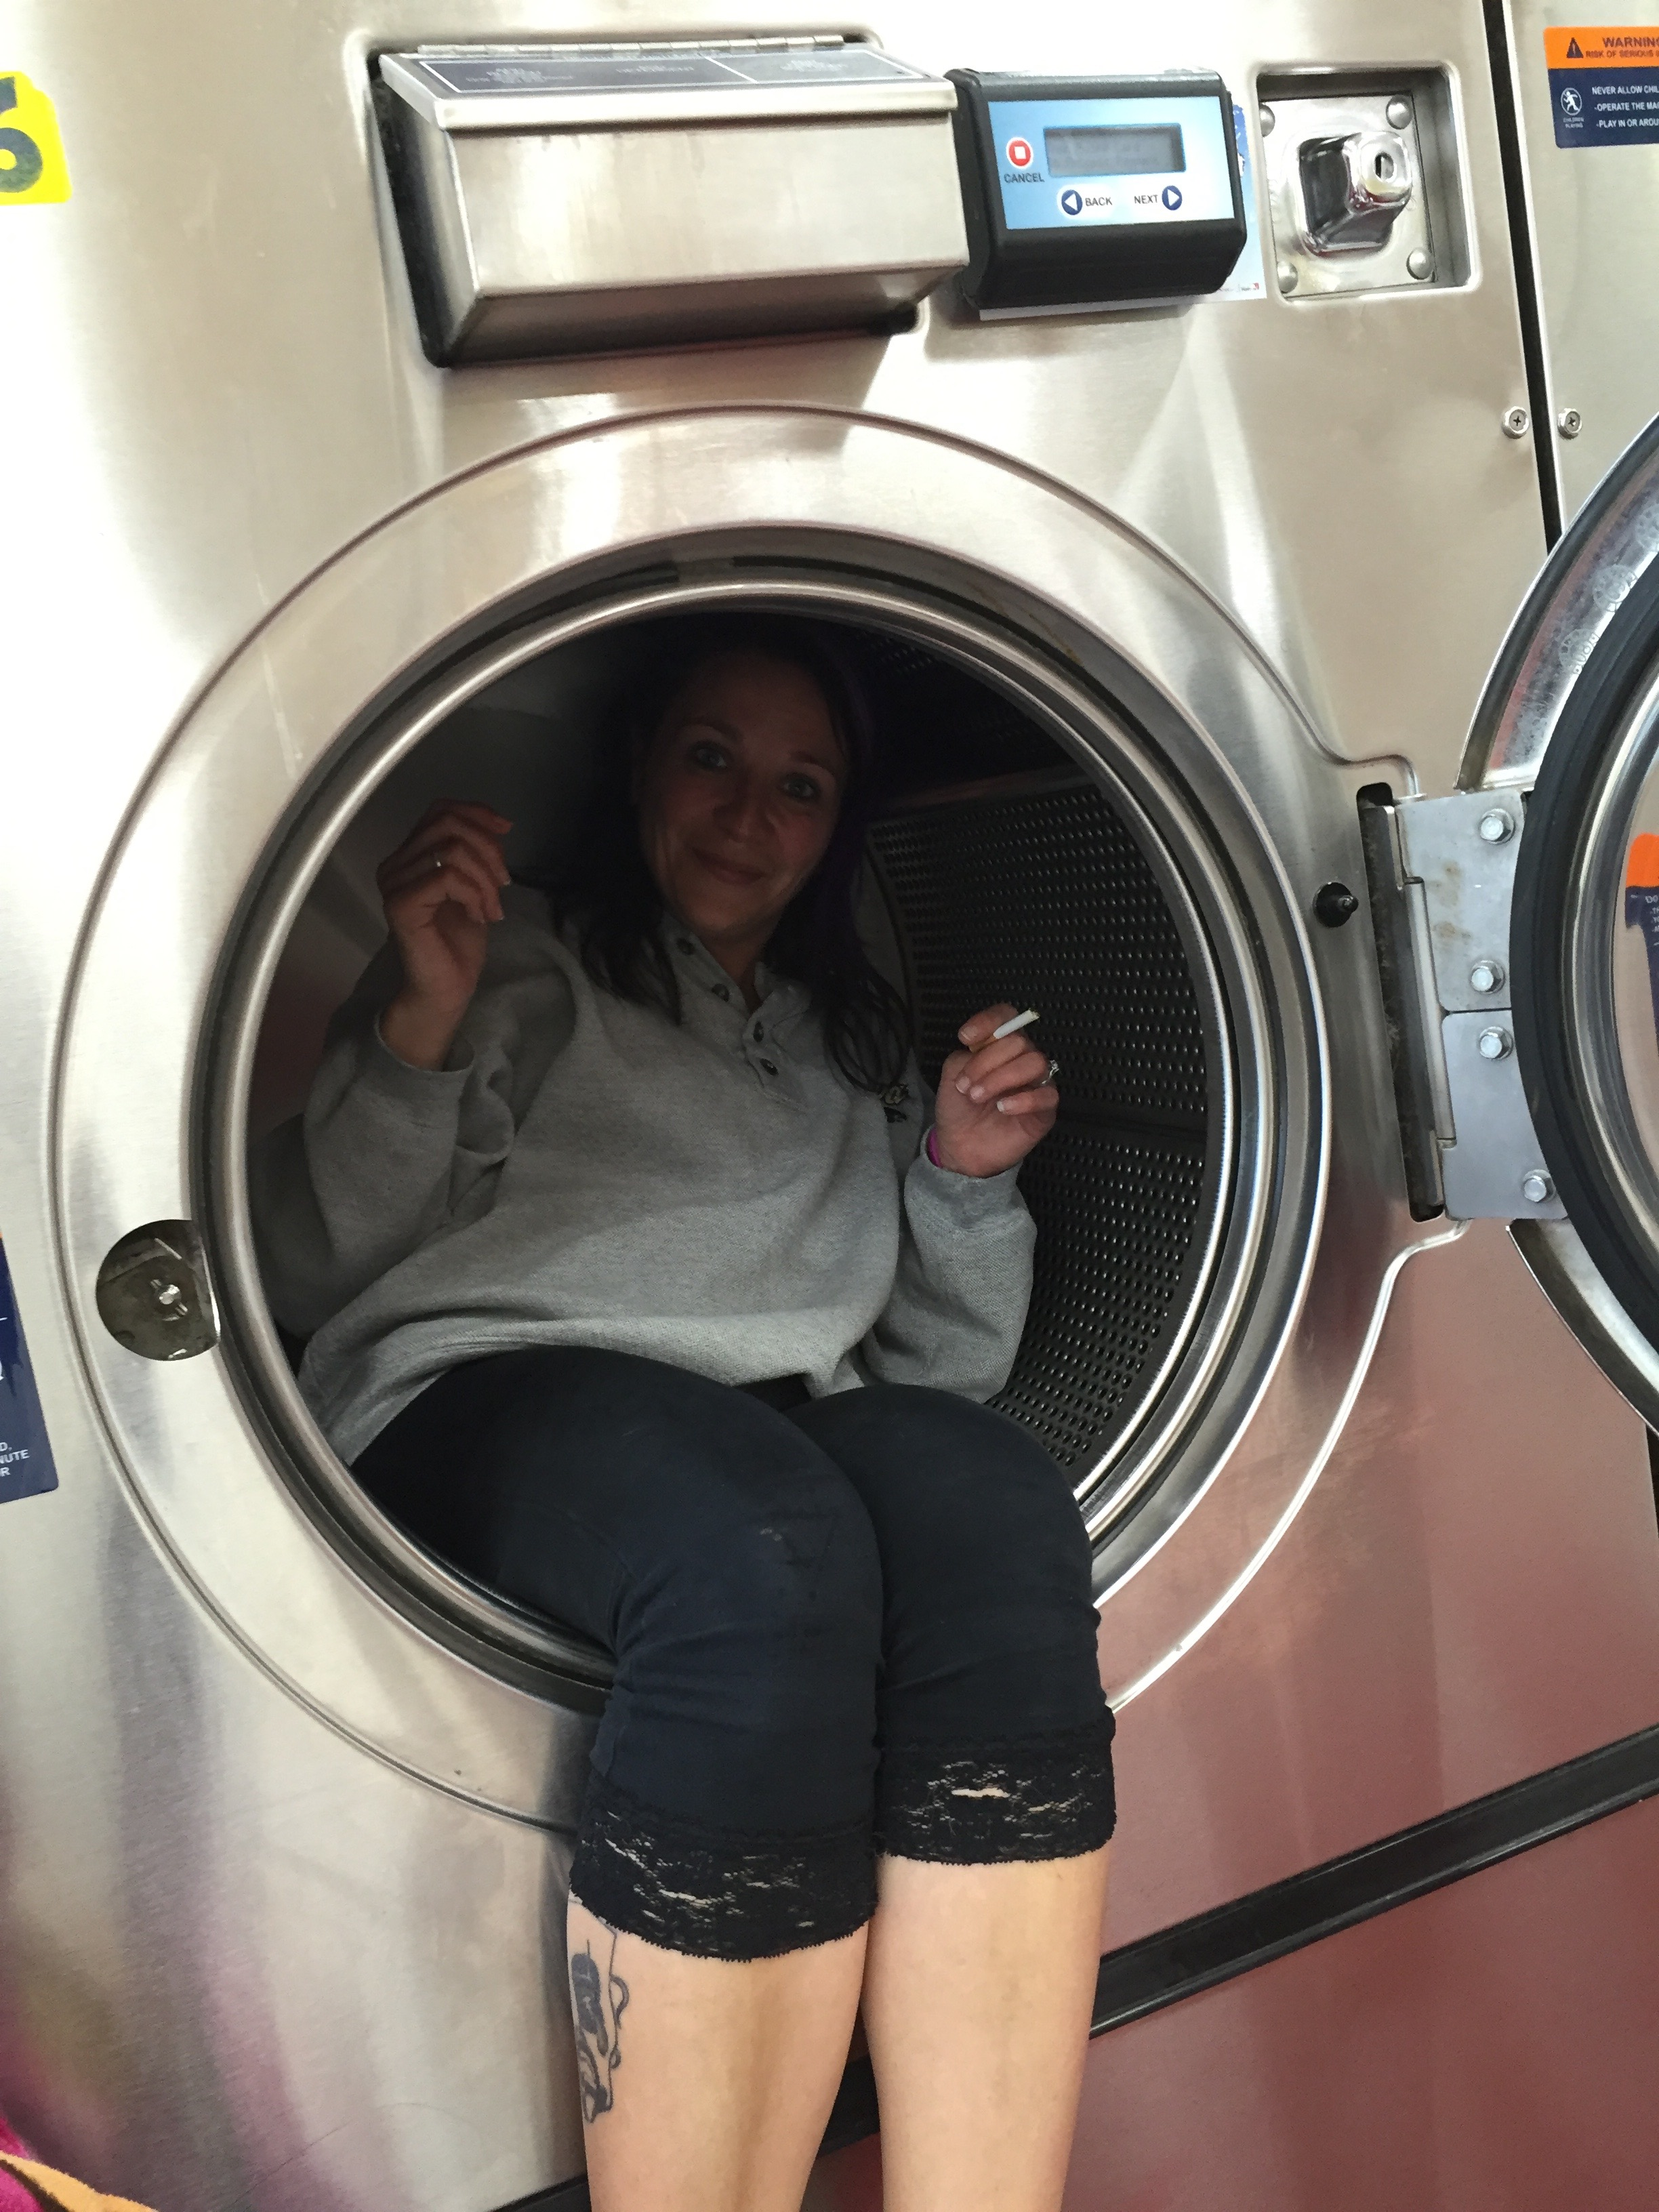 Women sitting inside a front load washing machine smoking